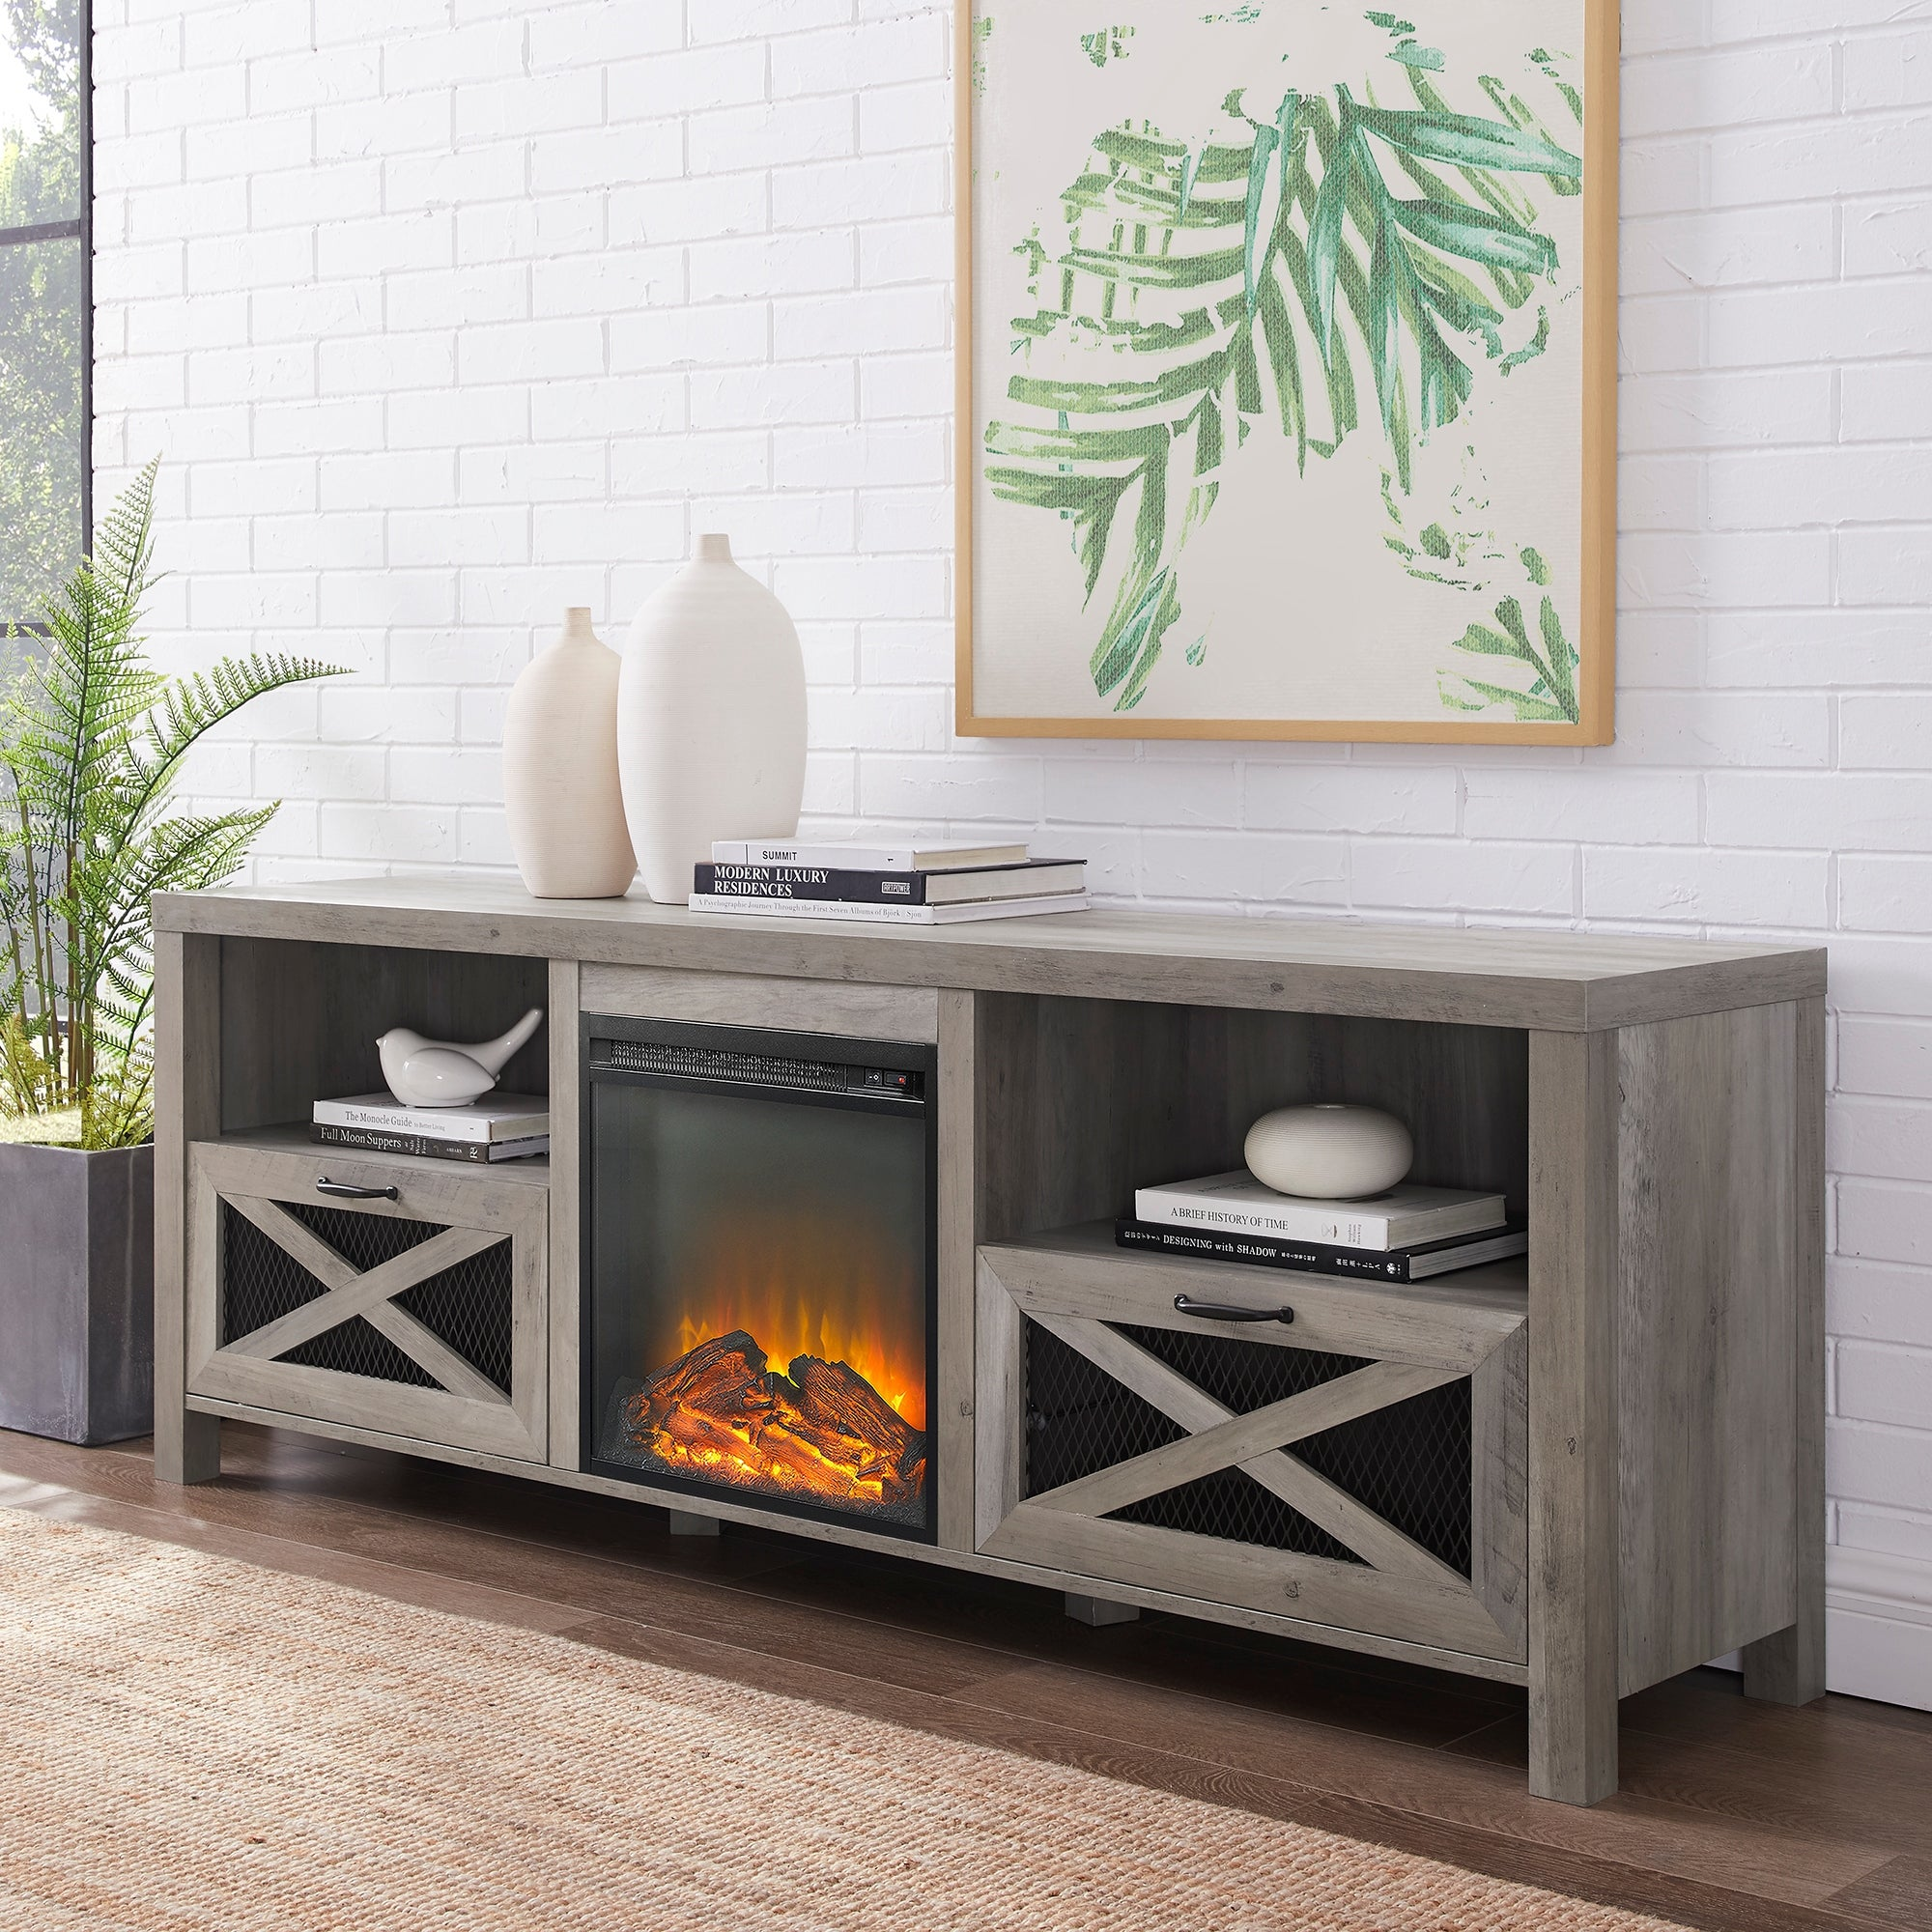 The Gray Barn 70 Inch Rustic Fireplace Tv Console On Sale Overstock 27991173